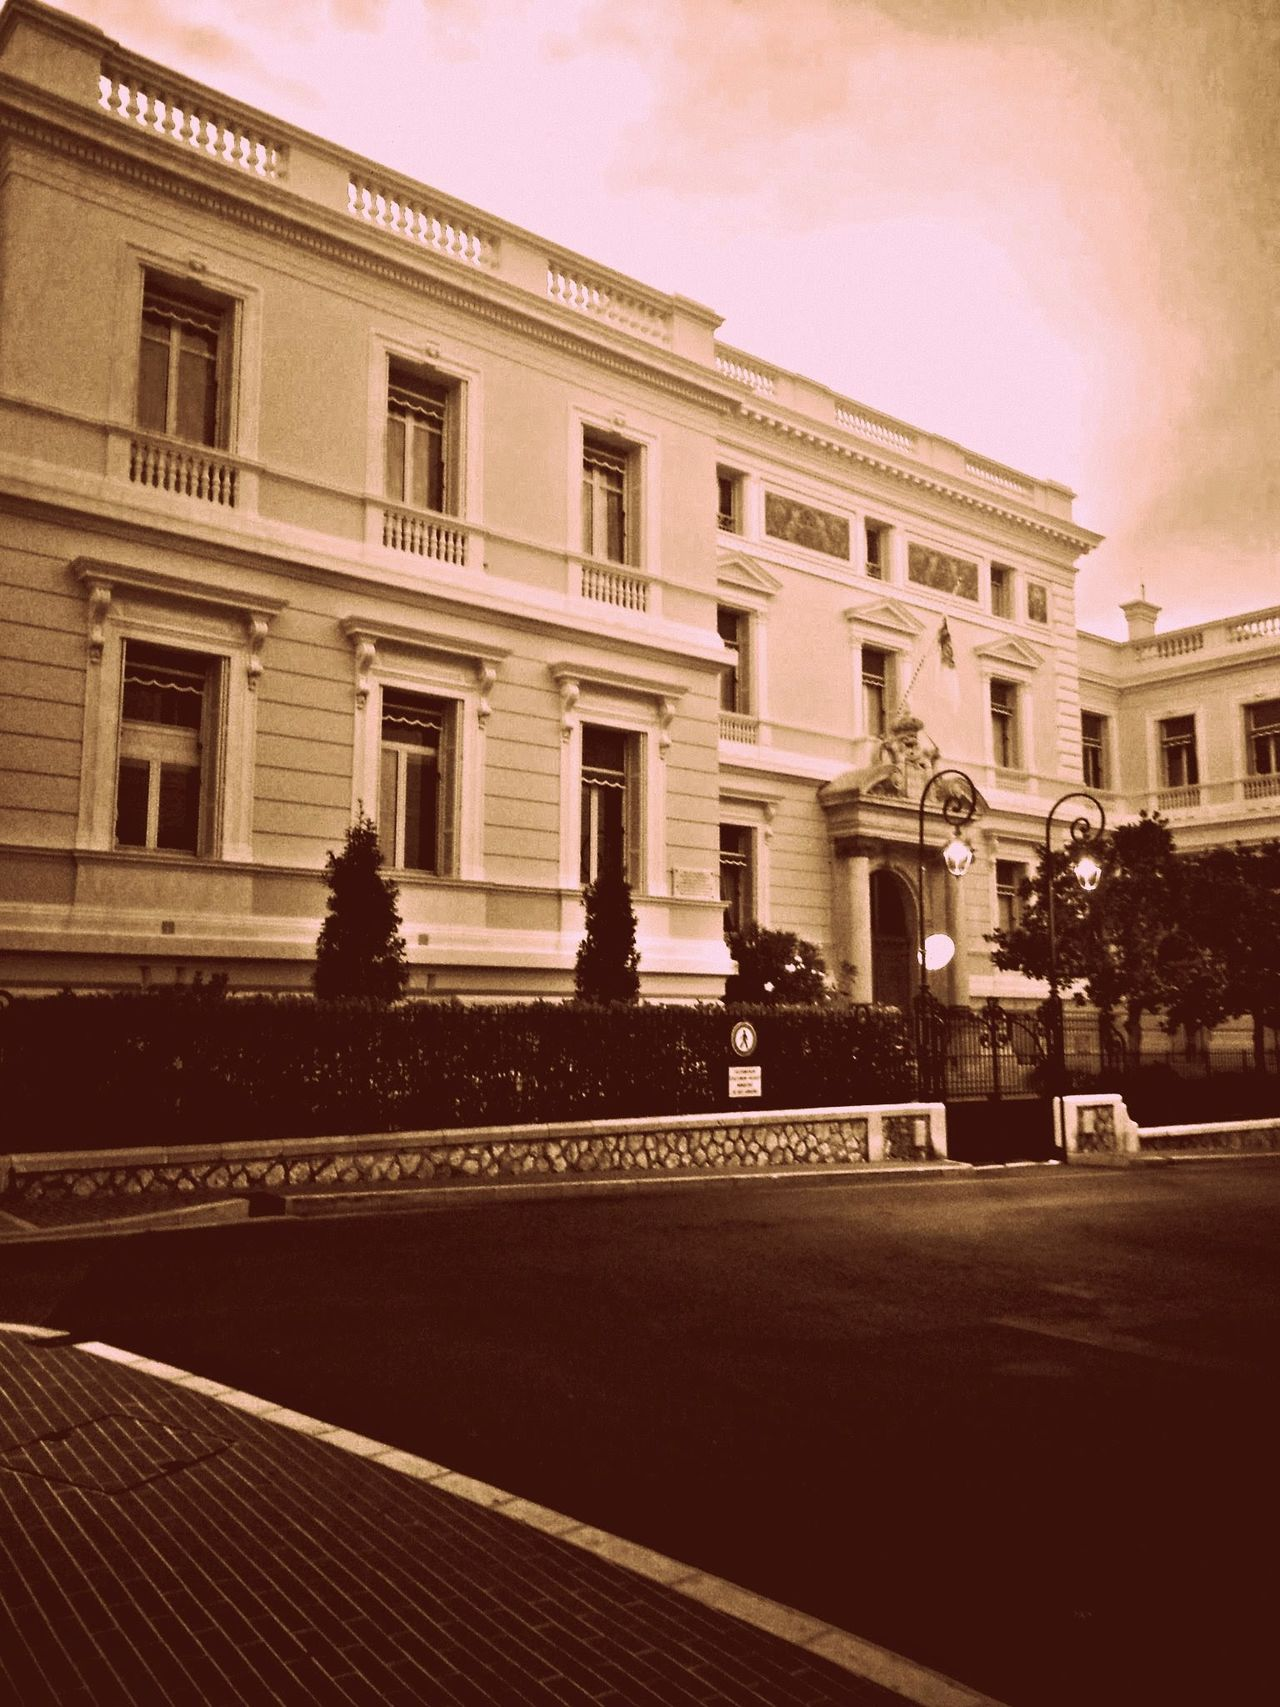 Architecture Building Exterior Built Structure No People Outdoors City Day Monaco Palace